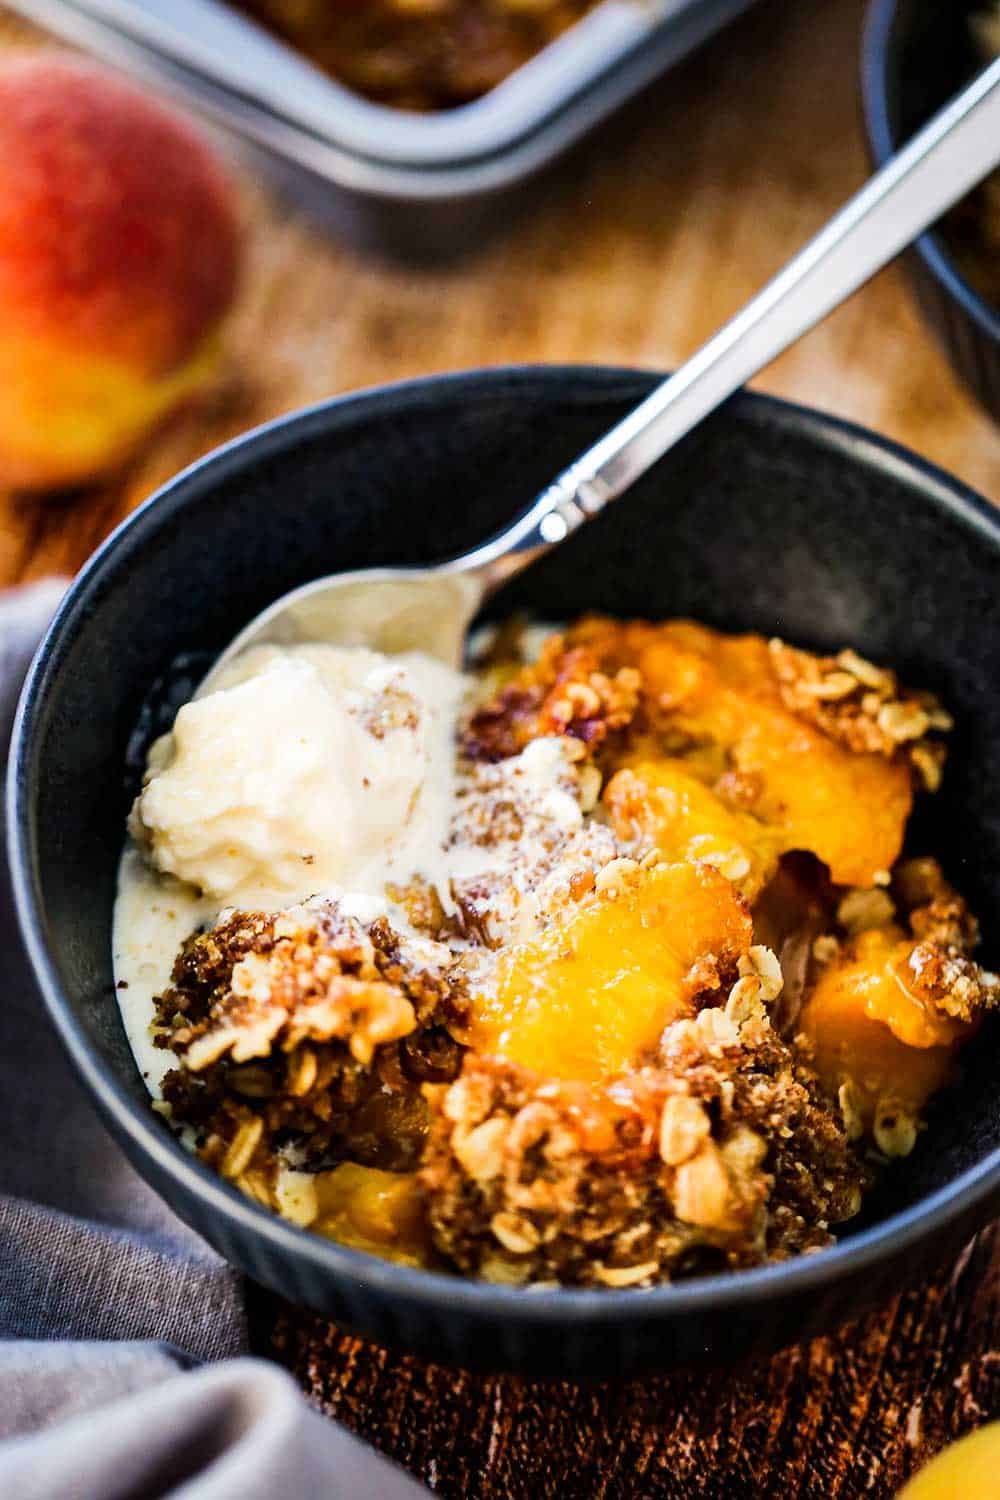 A blue dessert bowl filled with a helping of peach crisp with a scoop of melting vanilla ice cream on top.